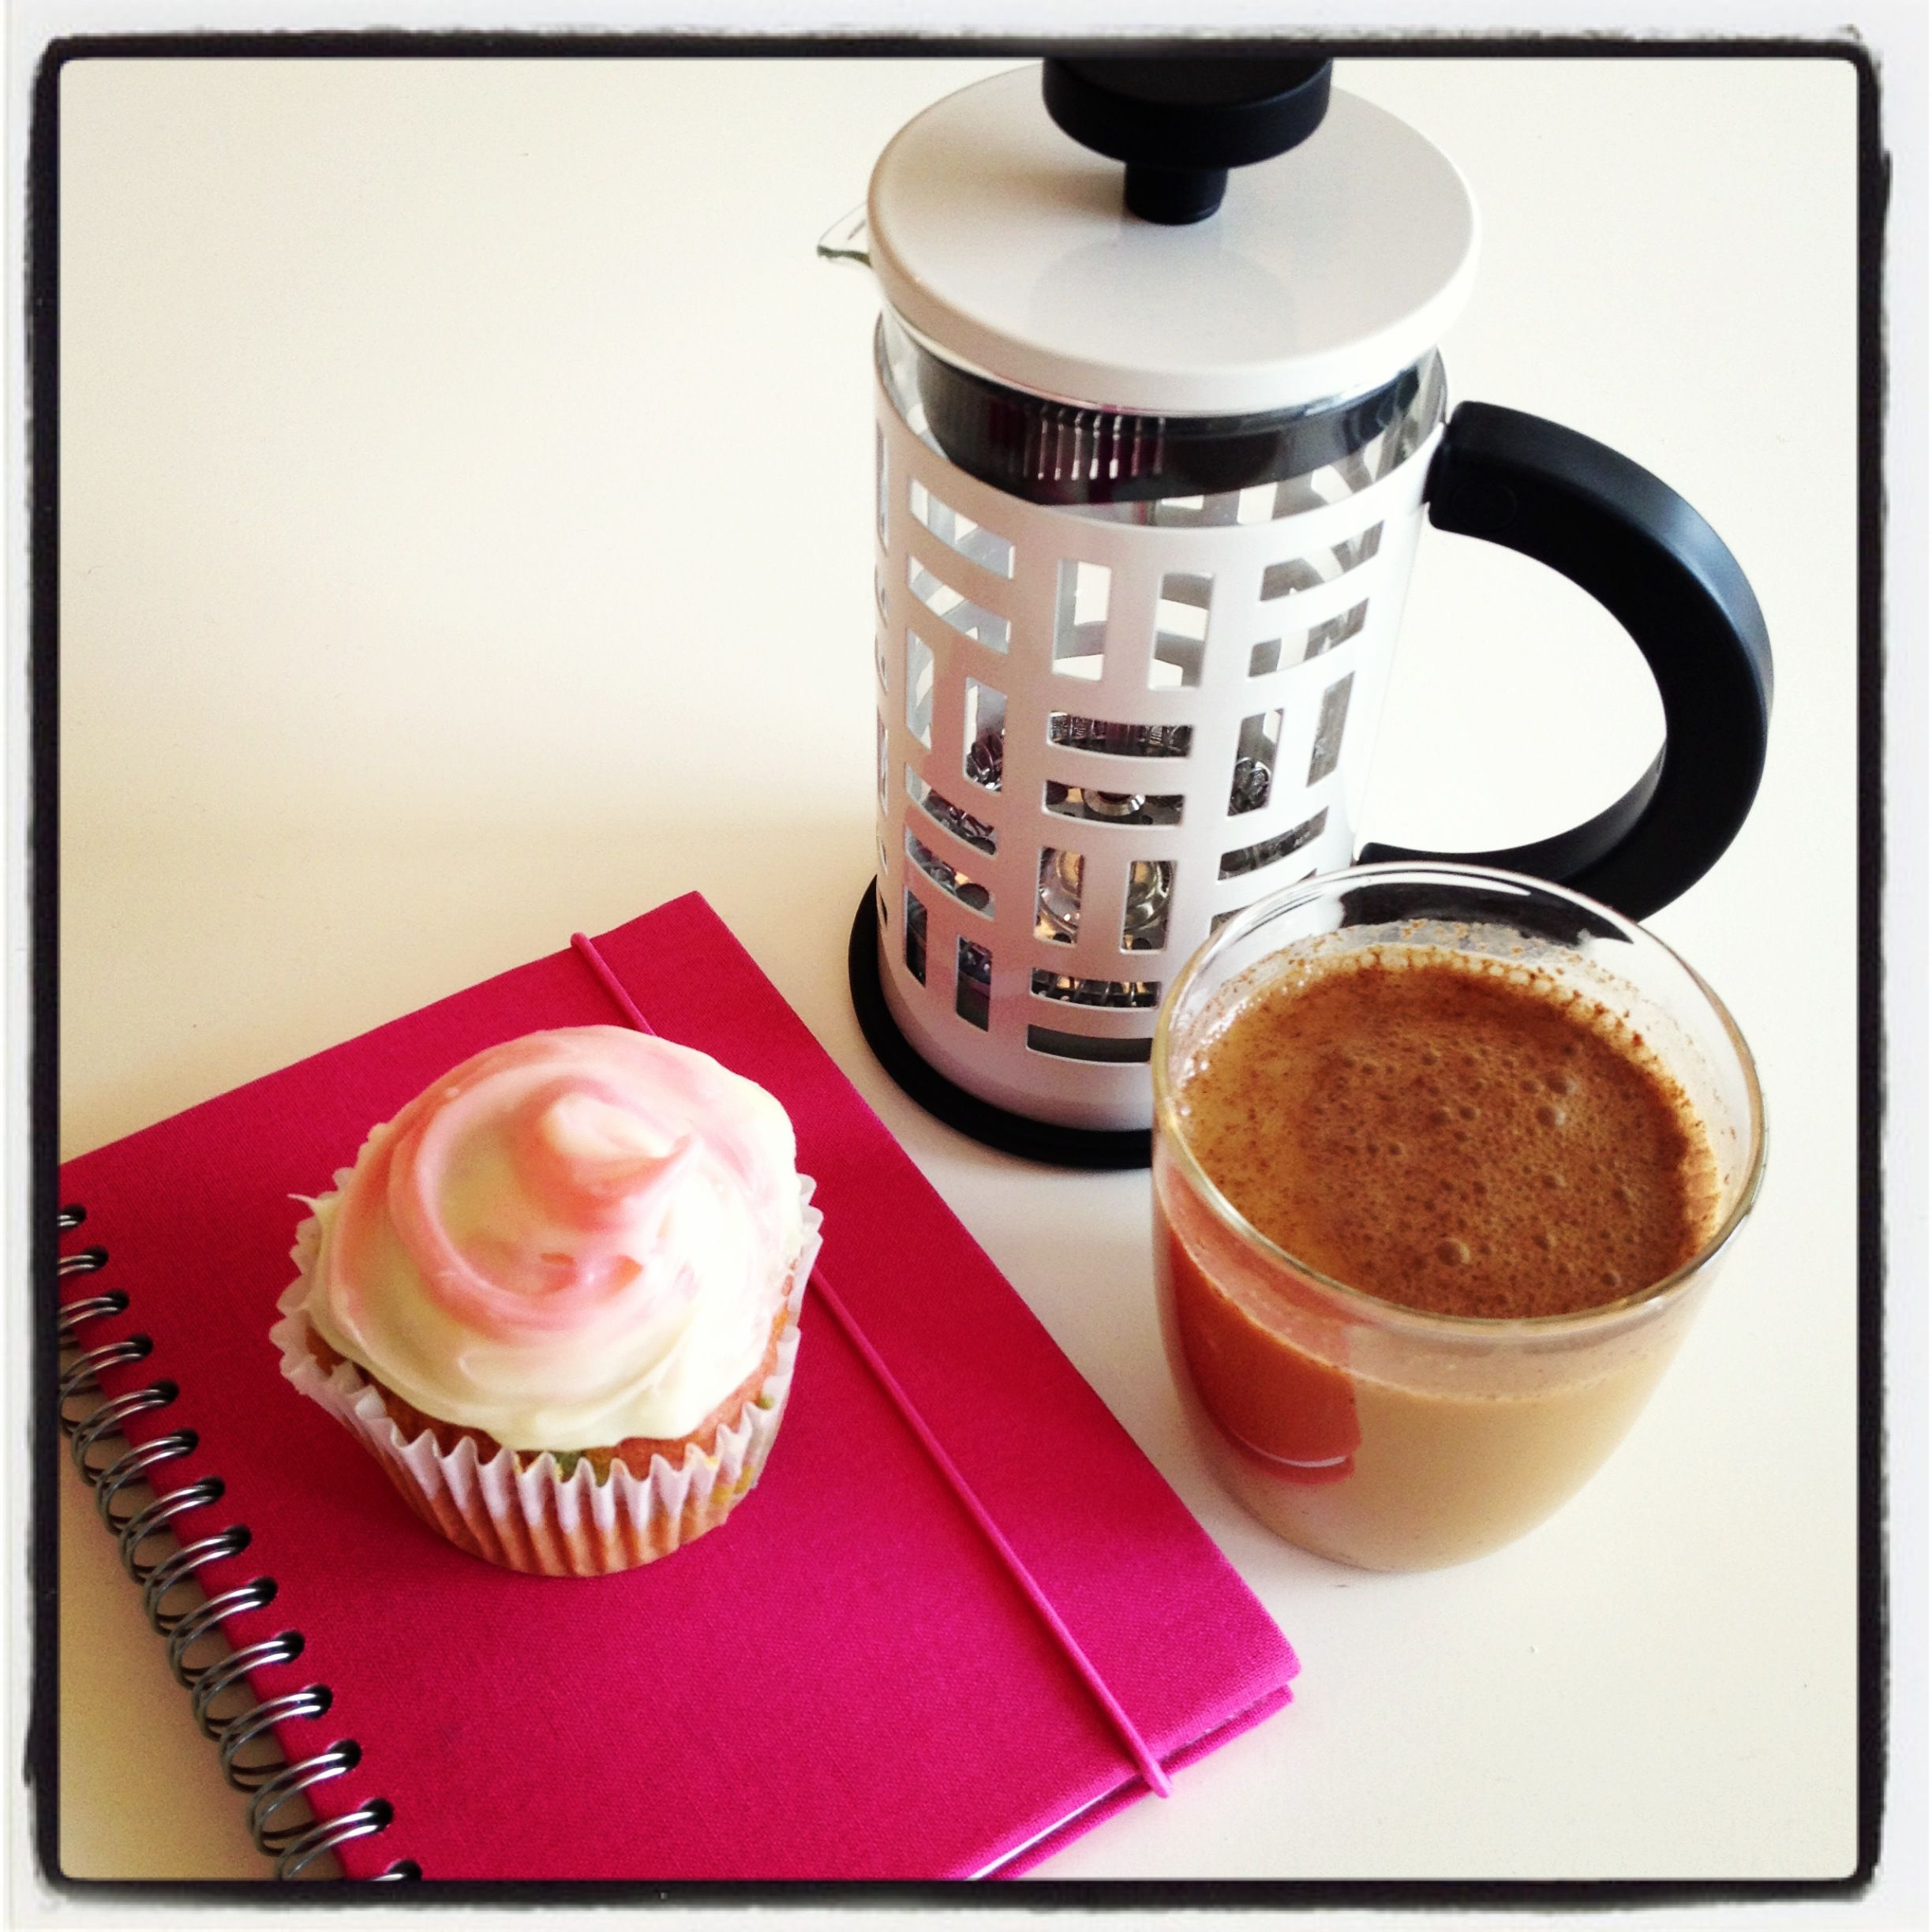 French Press coffee with a side of cupcake!